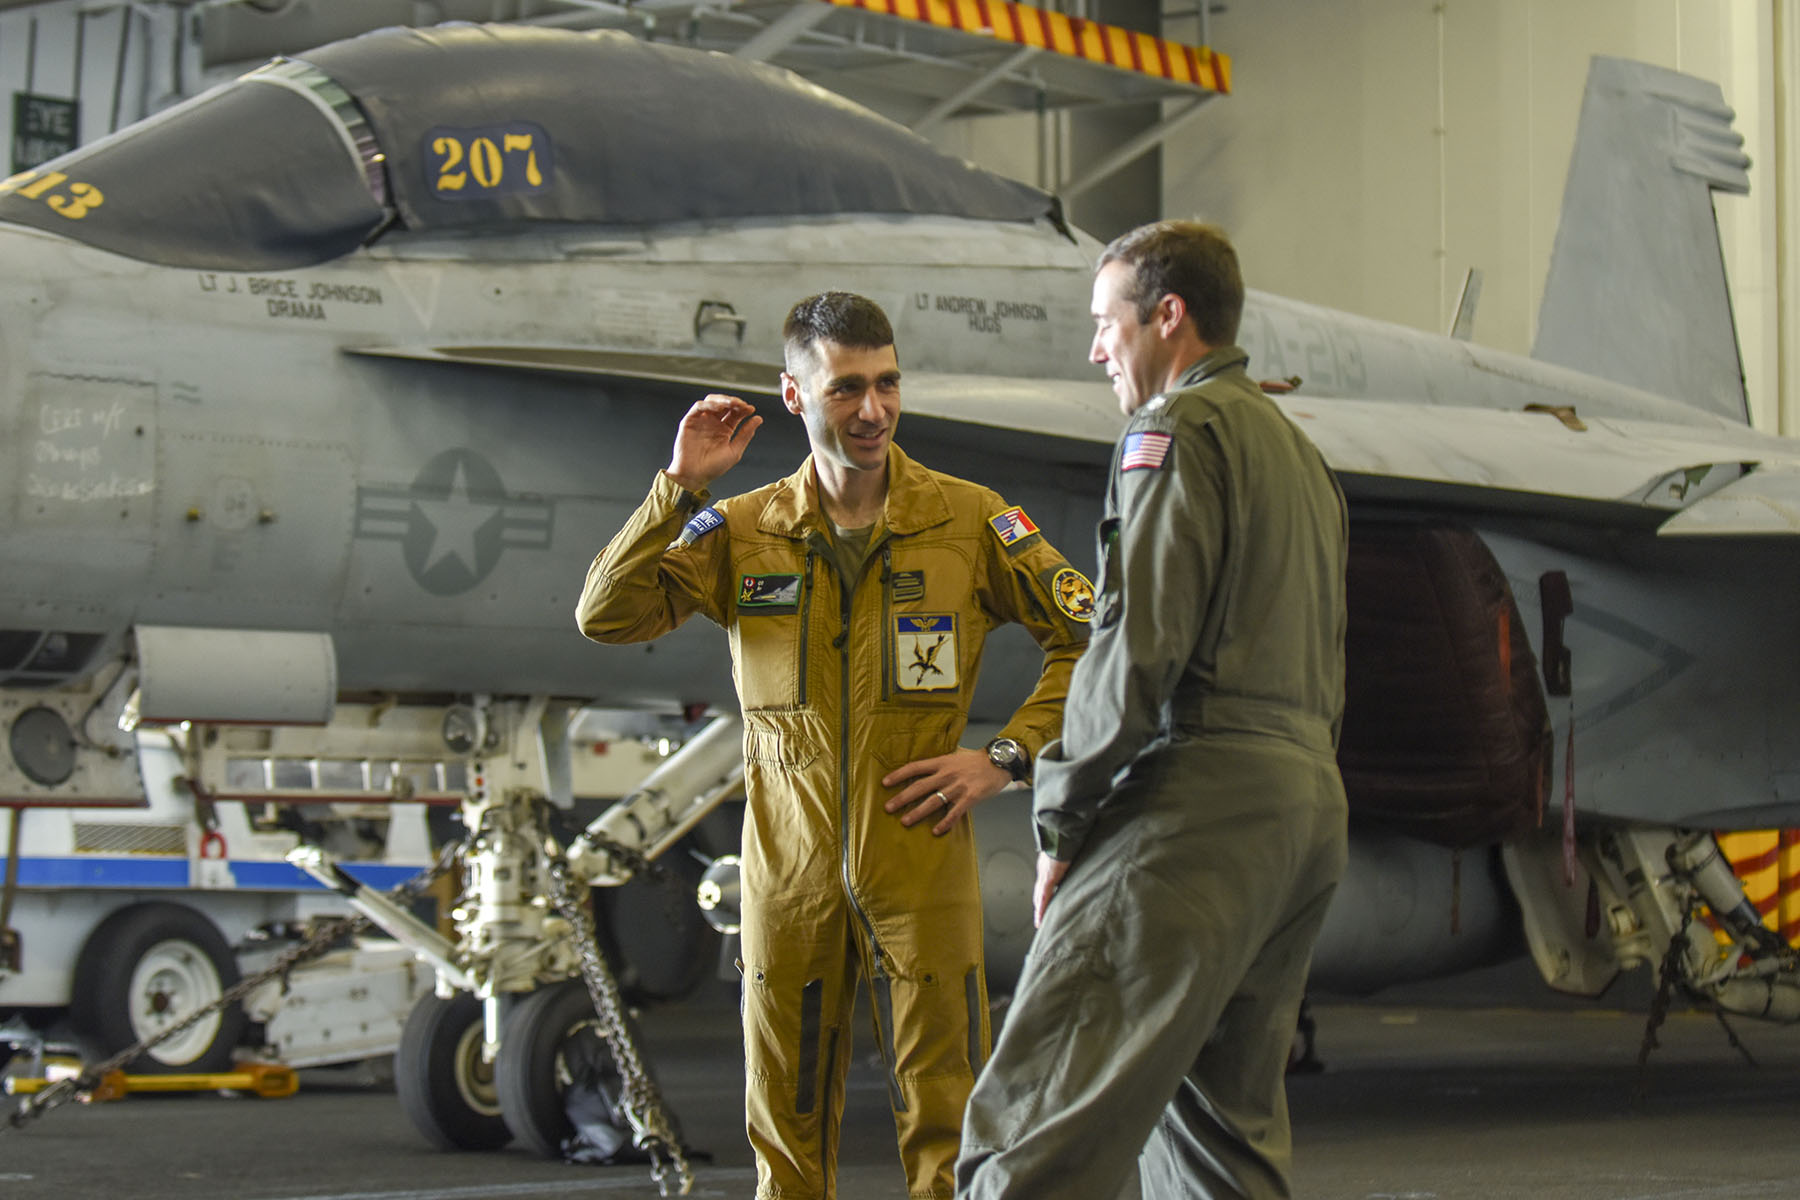 French Rafale pilot Vincent Isorce (L) and US Navy pilot Patrick Baker chat prior to a media session inside the hangar deck of the USS George H.W. Bush aircraft carrier on May 12, 2018 in the Atlantic Ocean - For ten days some 300 French sailors, including 16 pilots, their 12 Rafales fighter jets and one Hawkeye Surveillance plane are training on the USS George H.W. Bush aircraft carrier in the Atlantic ocean in what is been called the